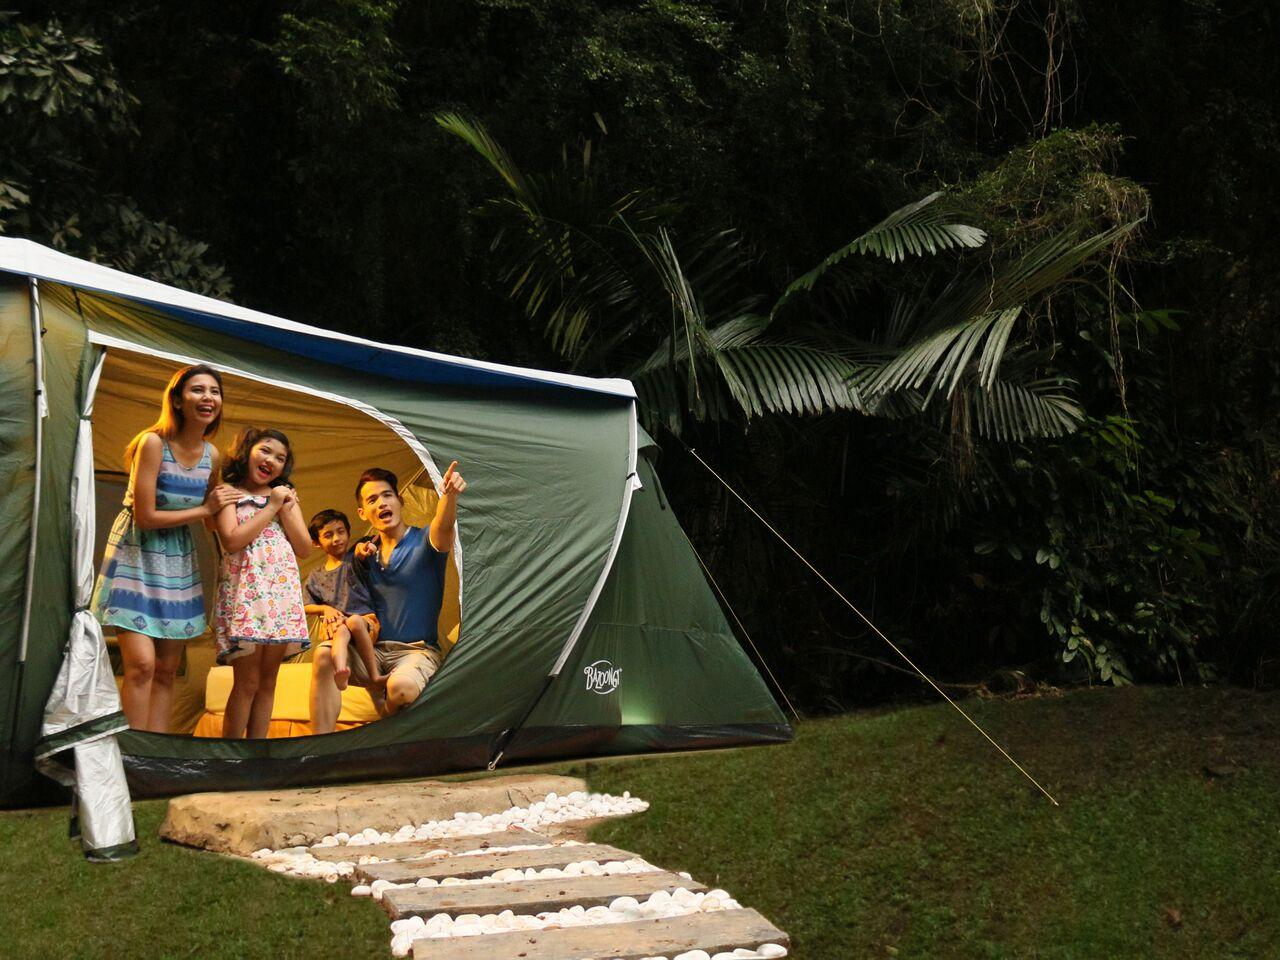 Sunway Lost World In Ipoh Room Deals Photos Reviews Voucher The Jungle Waterboom Weekday Outdoor Glamping For 2 Adults And Children